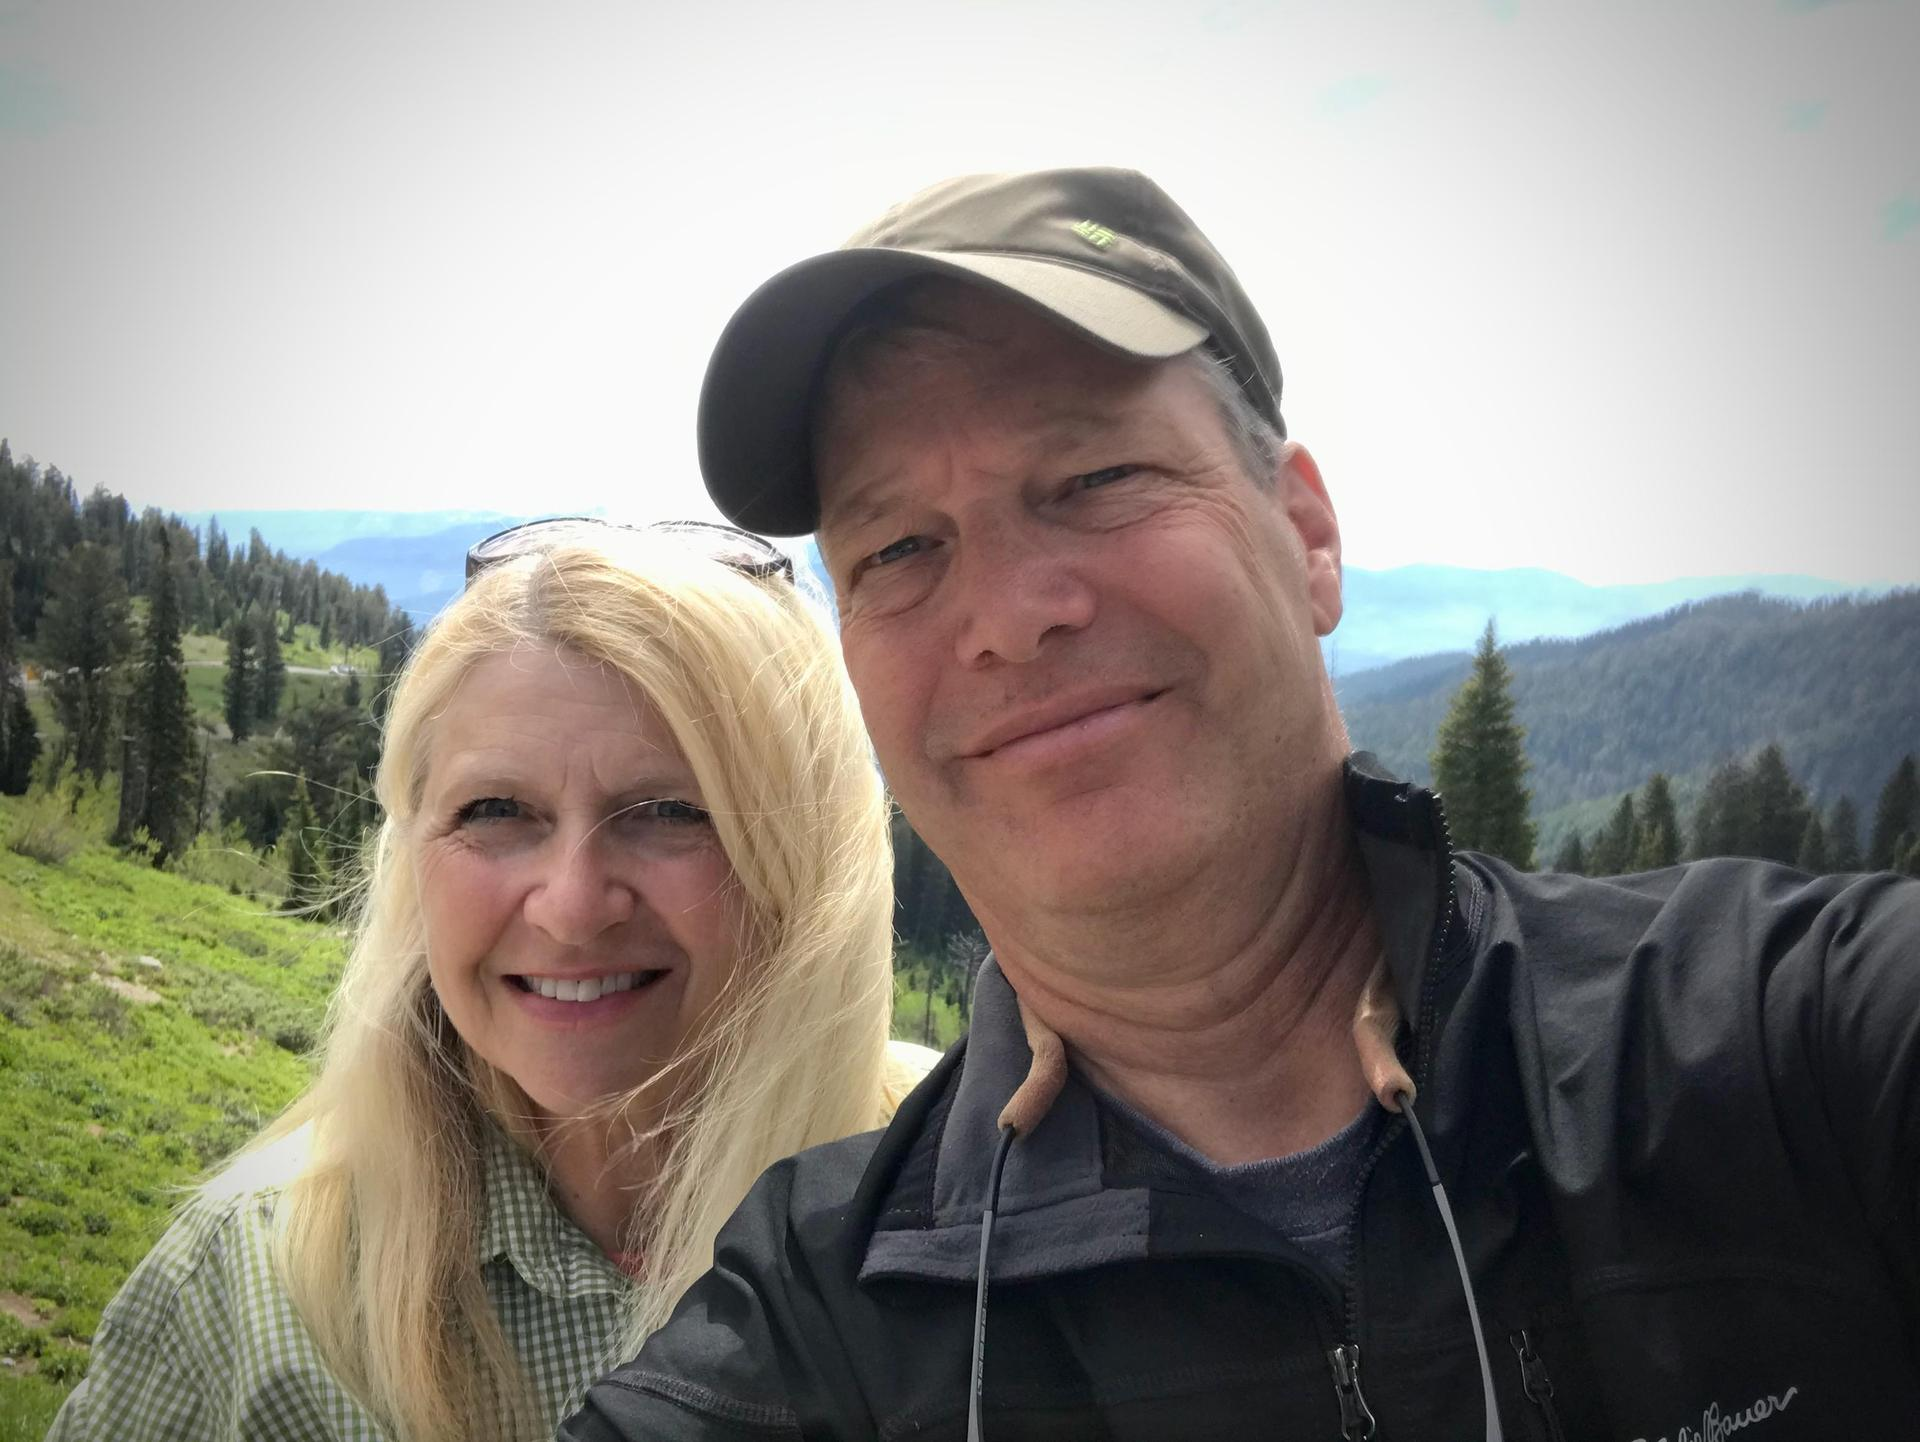 More time in the mountains with my husband